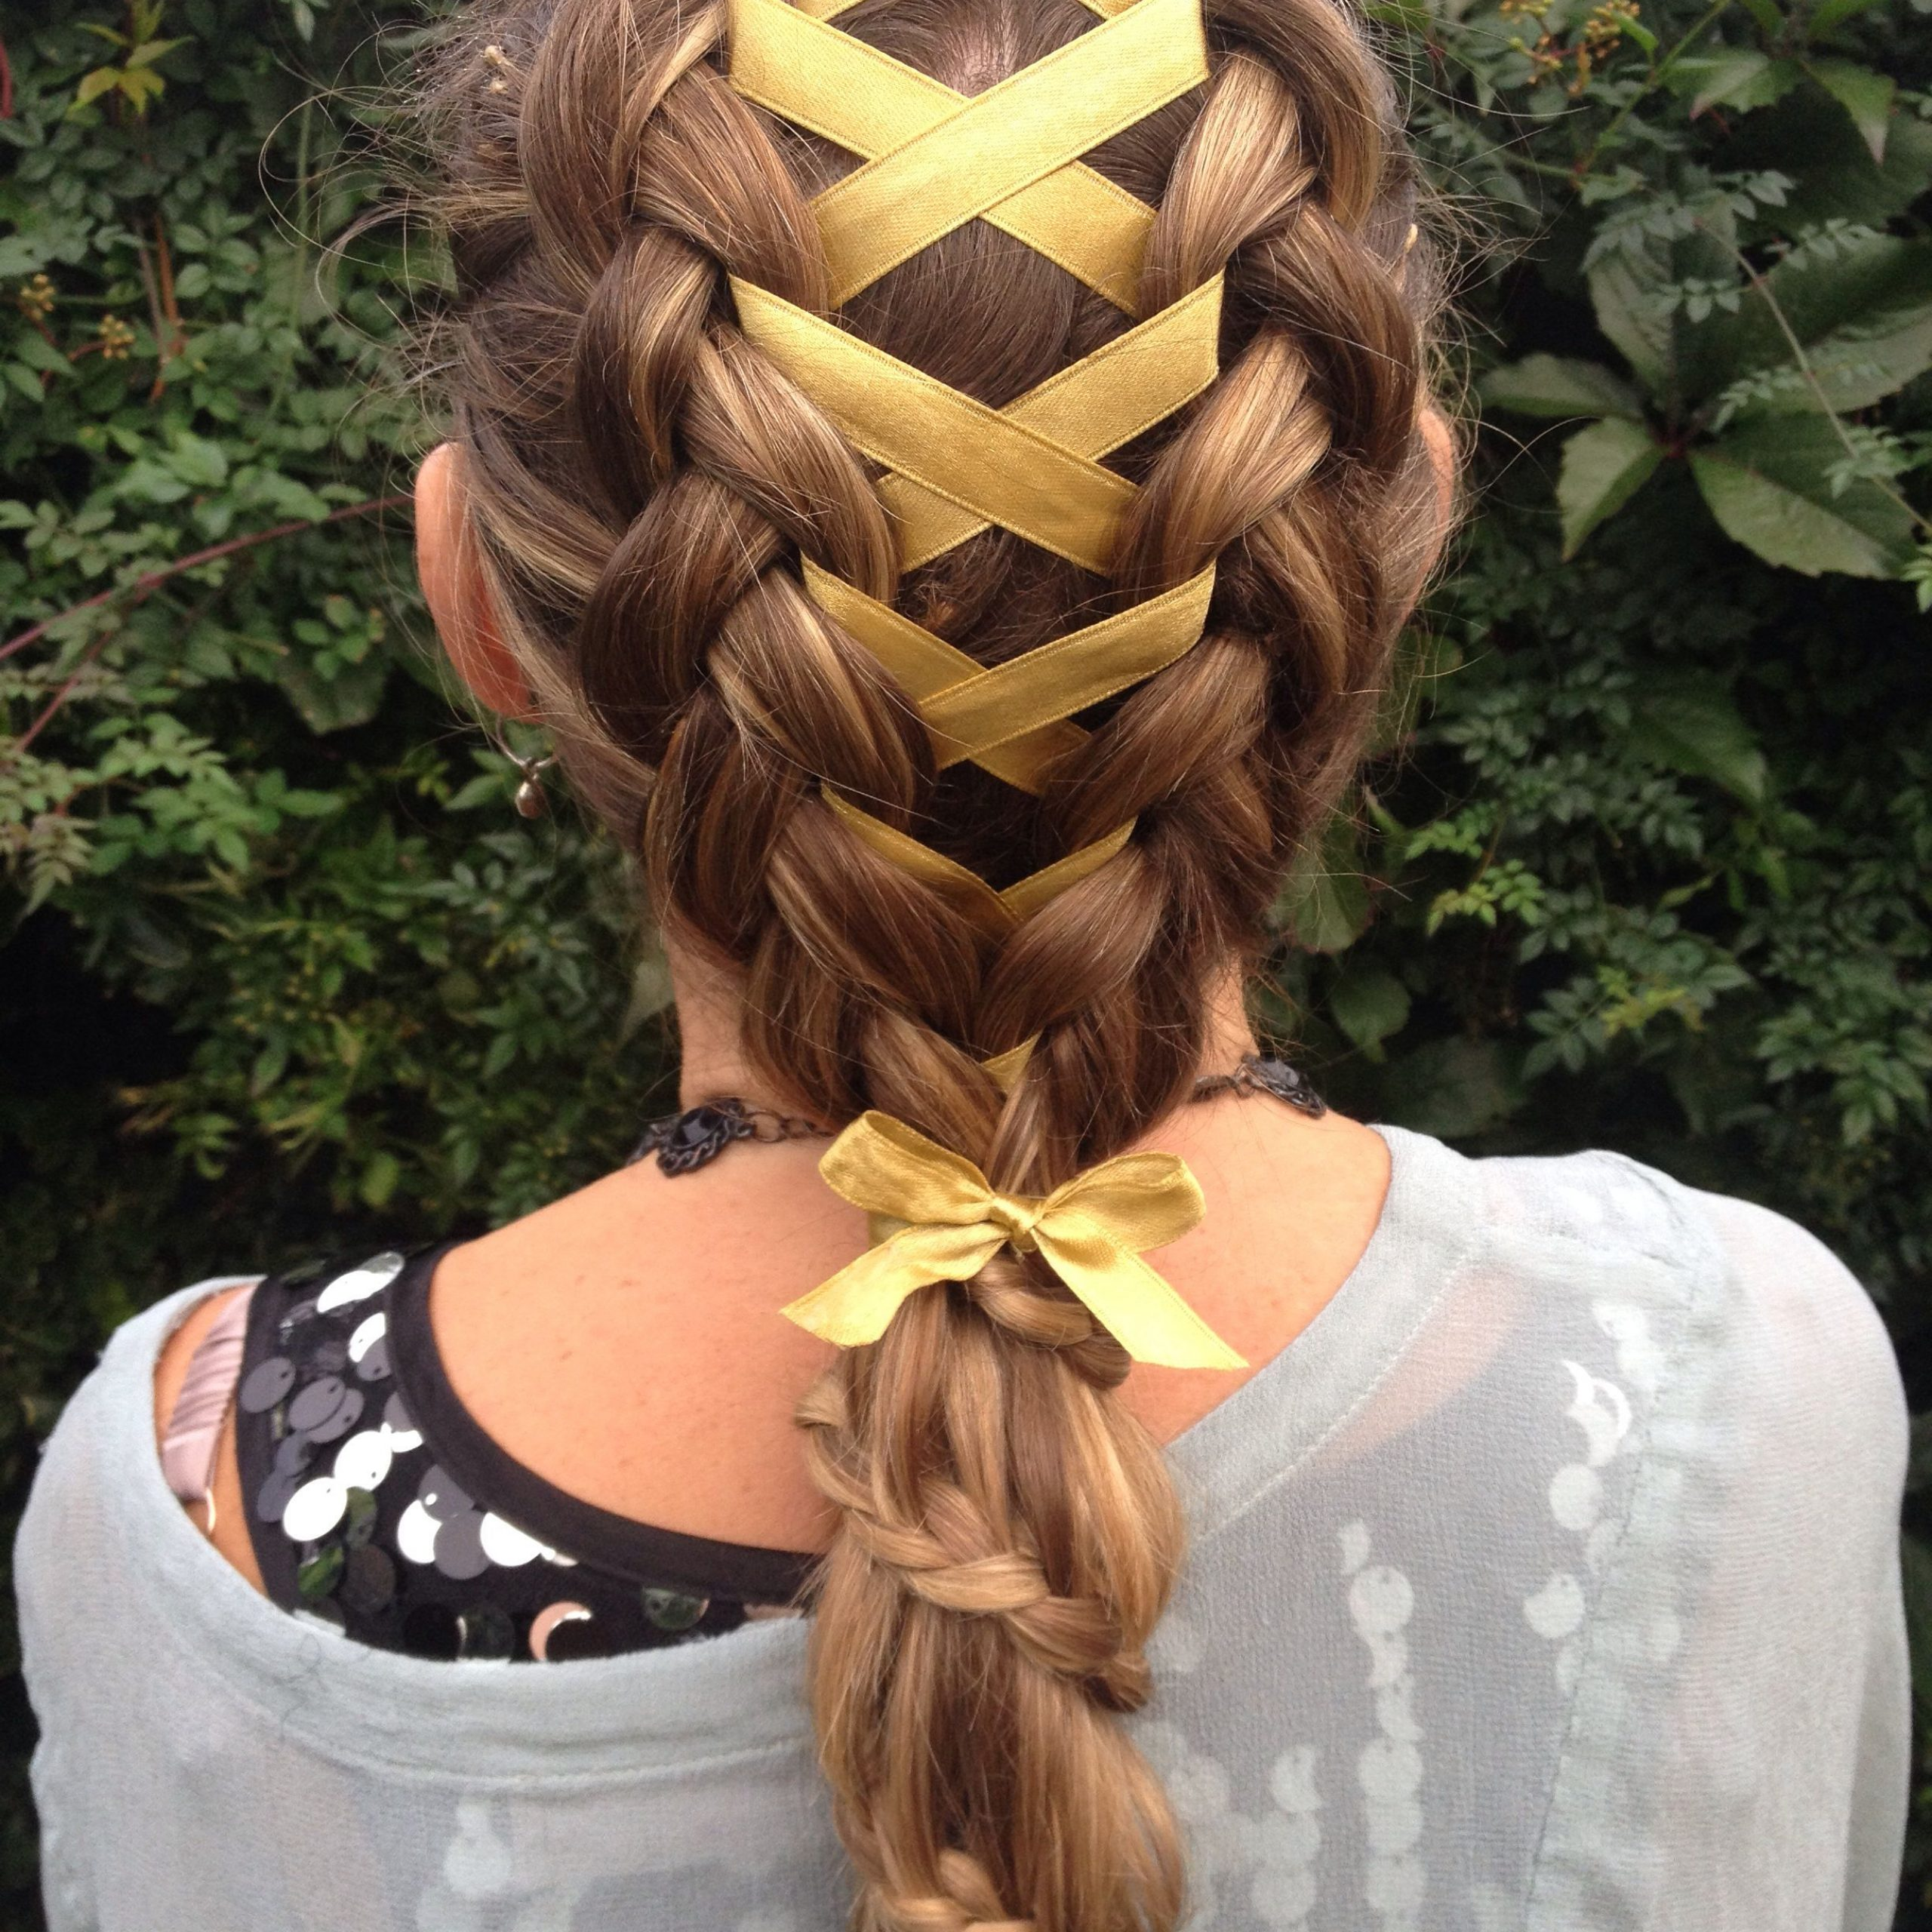 Corset Ribbon Braid Into A Carousel Braided Ponytail (View 8 of 20)